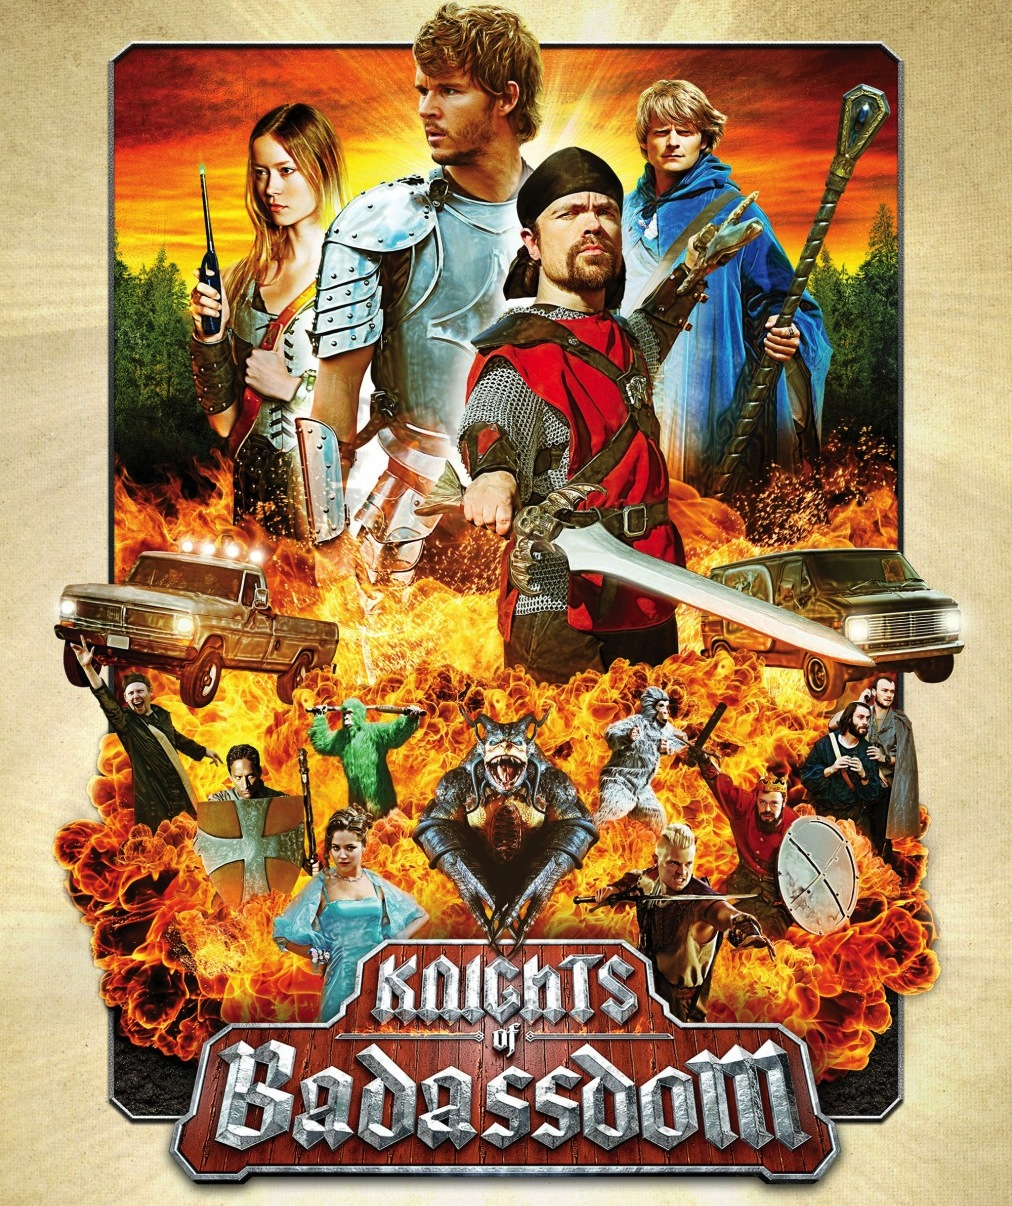 knights_of_badassdom-poster.jpg